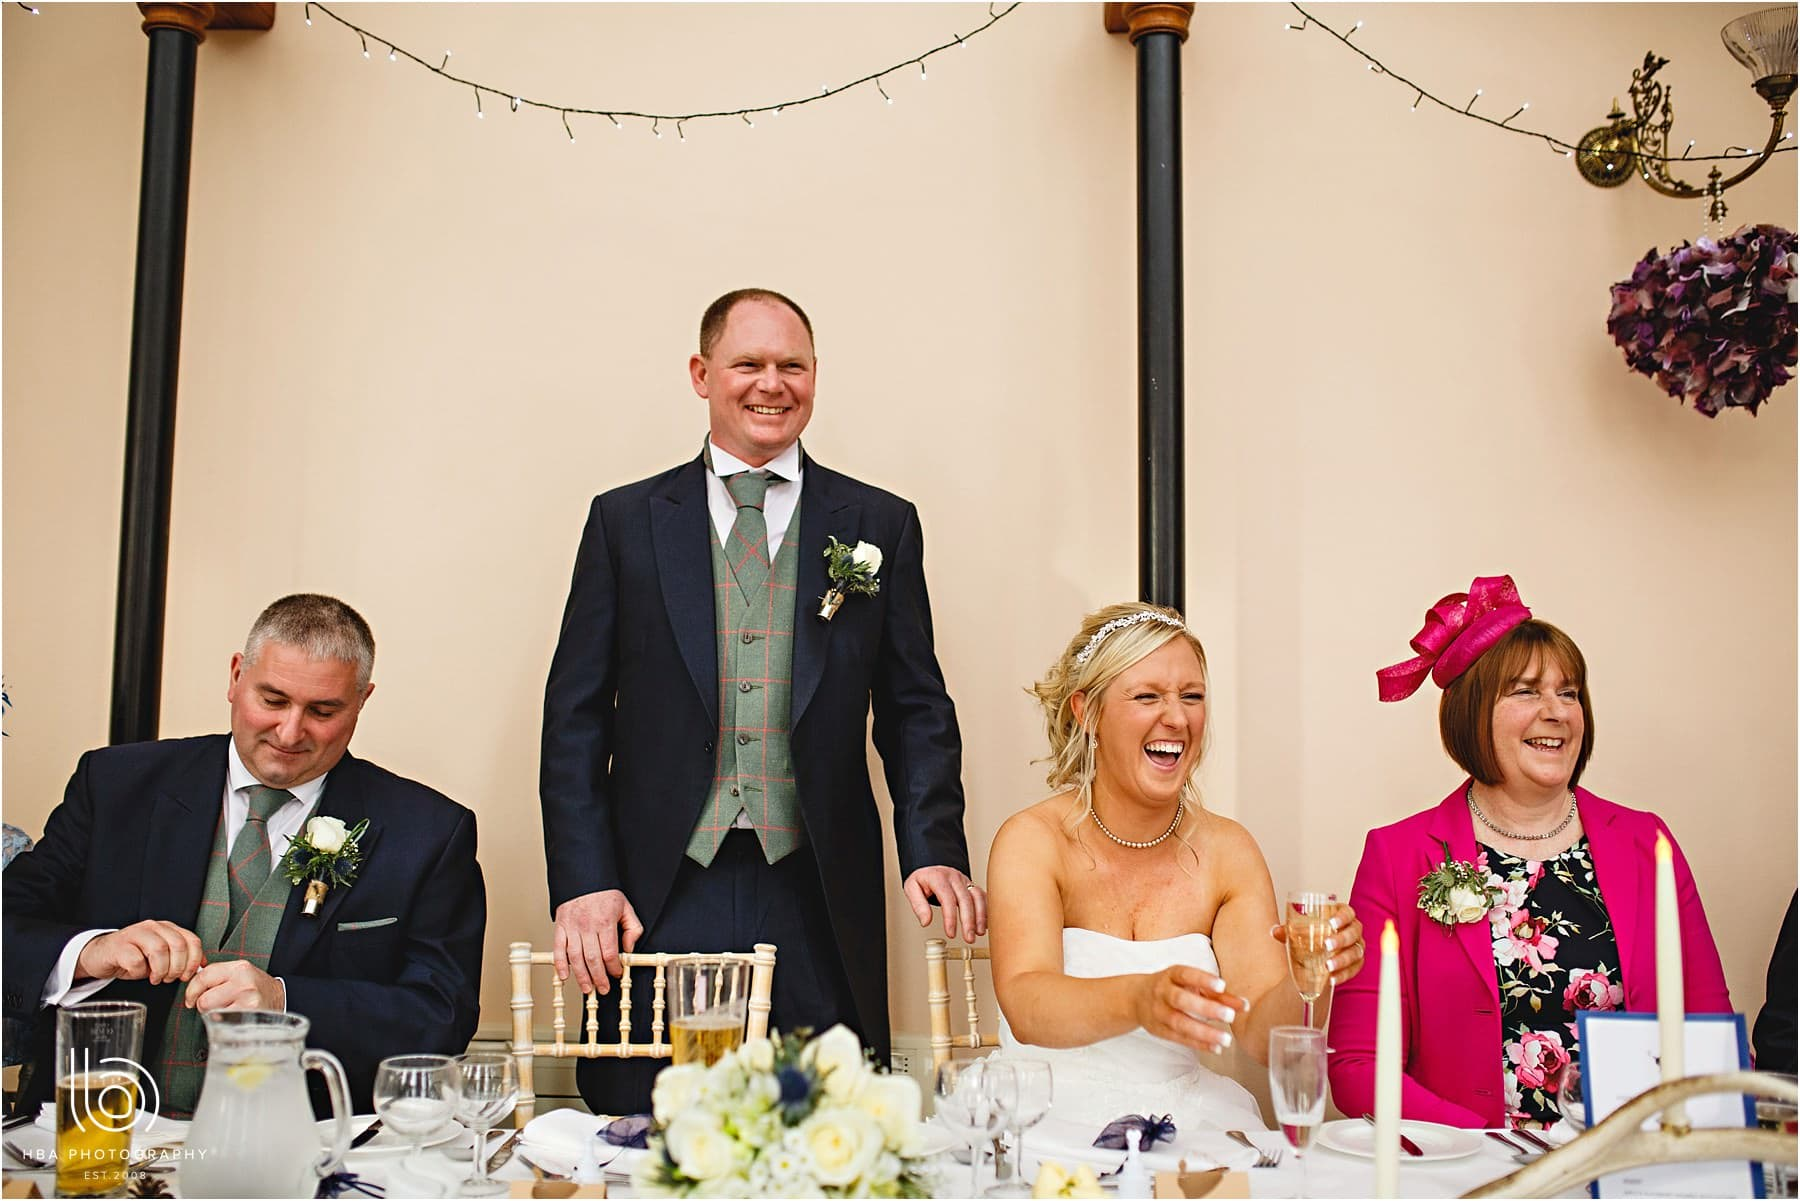 Laughing at the grooms speech